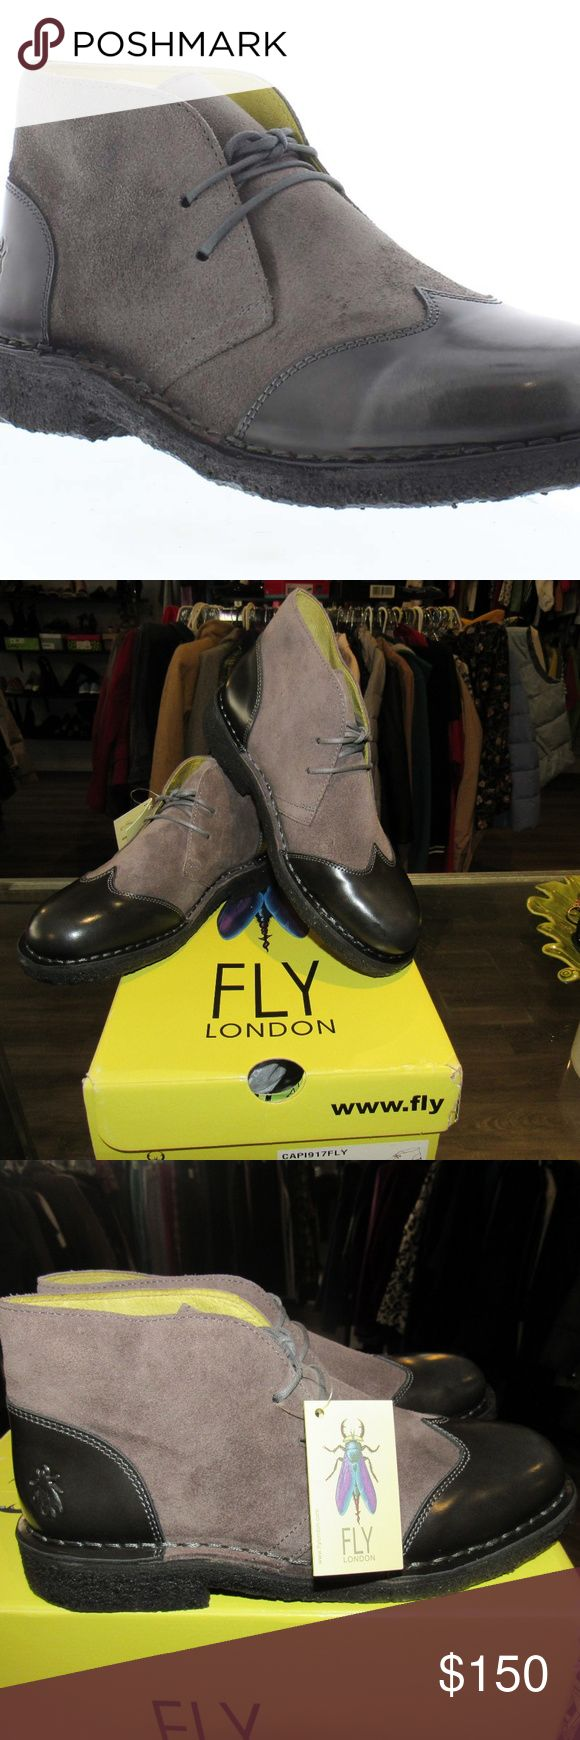 """NWT Fly London Ankle Boots! Fly London """"Capi917Fly"""" Lace Up Ankle Women Boots with 1"""" heel (Size 36EU/5.5-6 US). NWT/NWB and in good condition. We love to negotiate, so feel free to send us an offer!  Shipping is next business day.  Check out the rest of our closet. Thanks! Fly London Shoes Ankle Boots & Booties"""